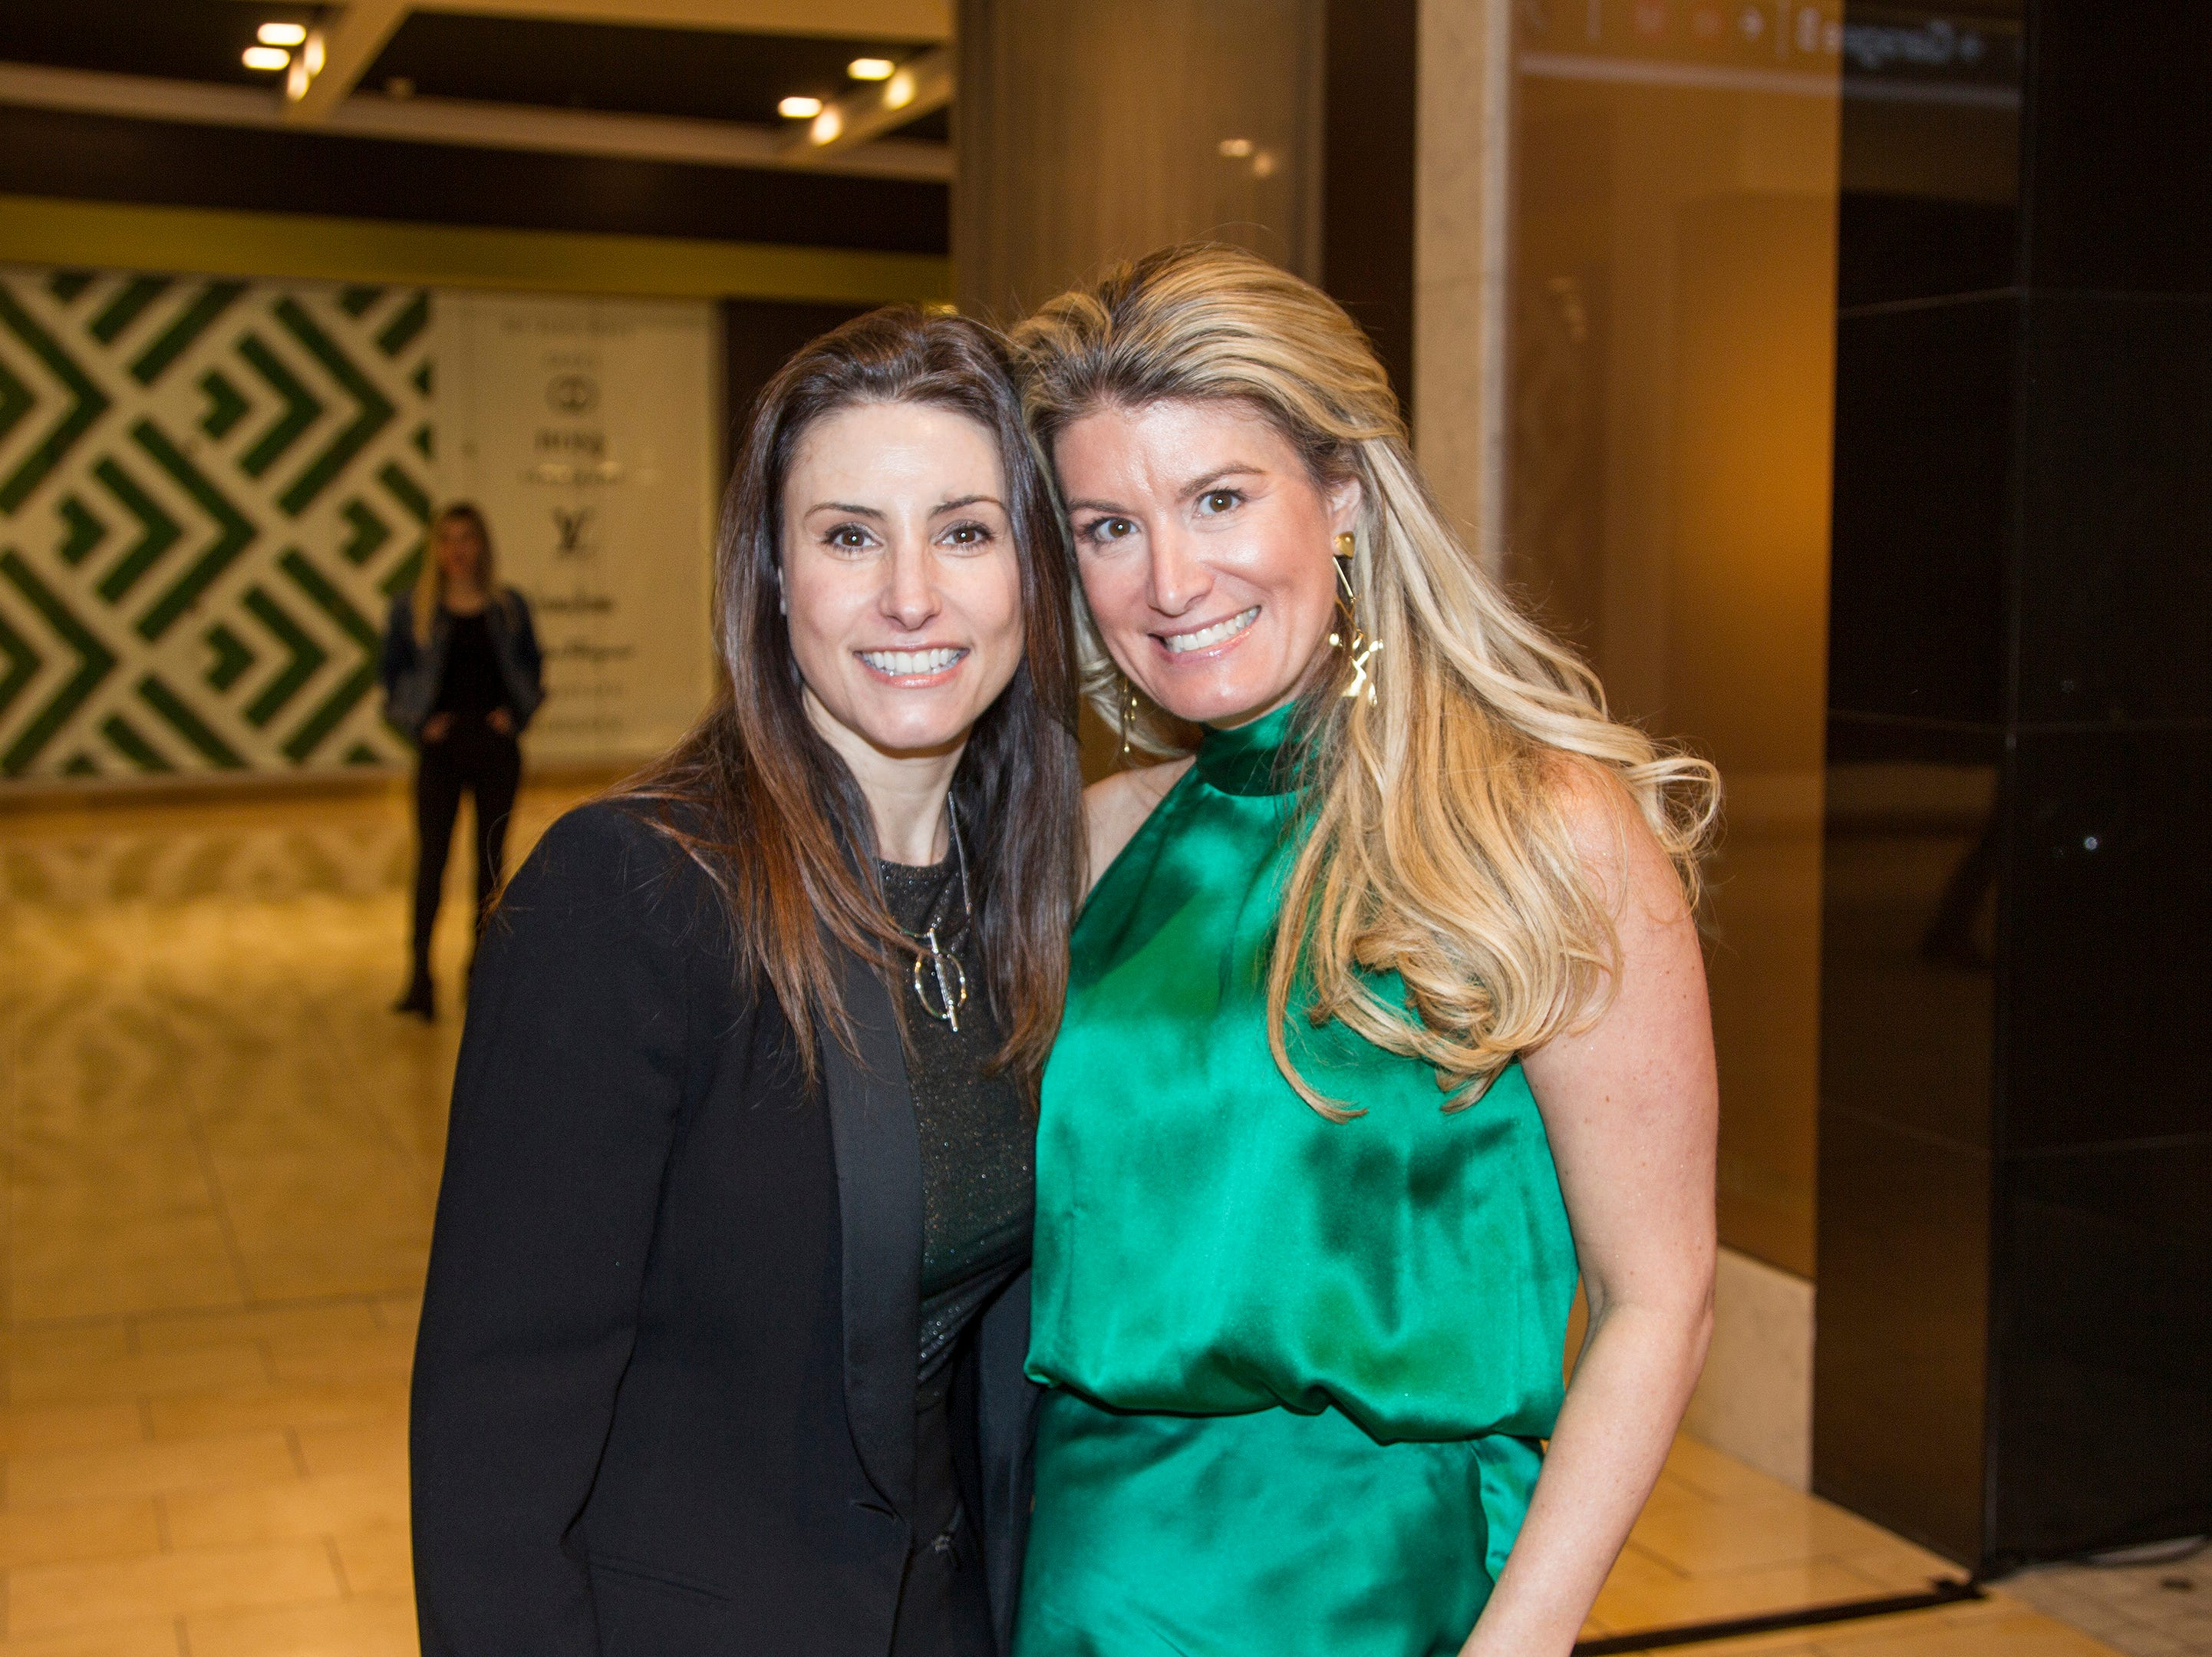 Lisa Hermann, Candace Kristin. Westfield Garden State Plaza held its Meet the Artist & Trend Show benefitting The Valley Hospital Auxillary Saddle River Branch. 04/03/2019